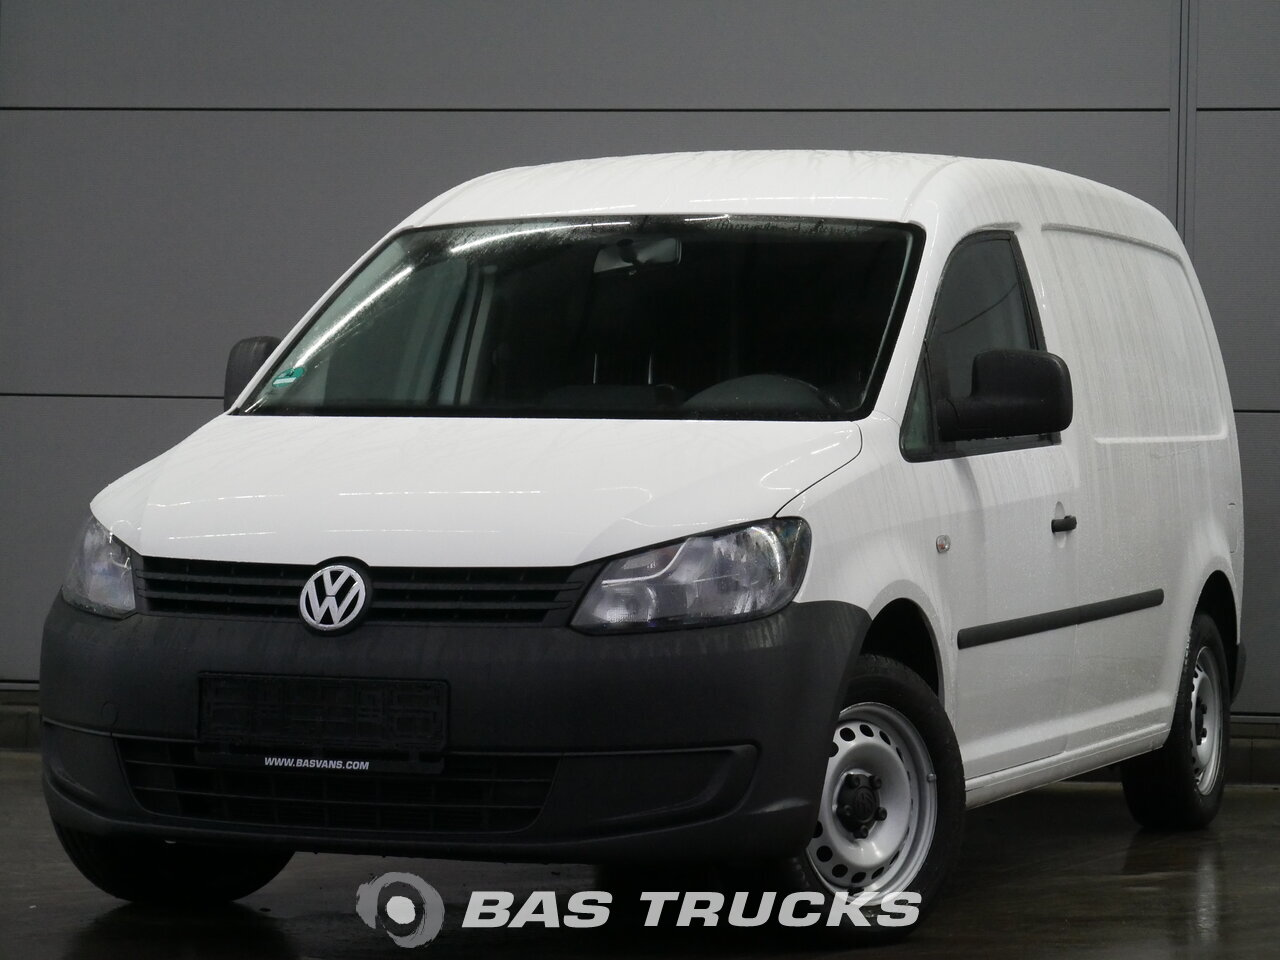 volkswagen caddy maxi light commercial vehicle bas trucks. Black Bedroom Furniture Sets. Home Design Ideas